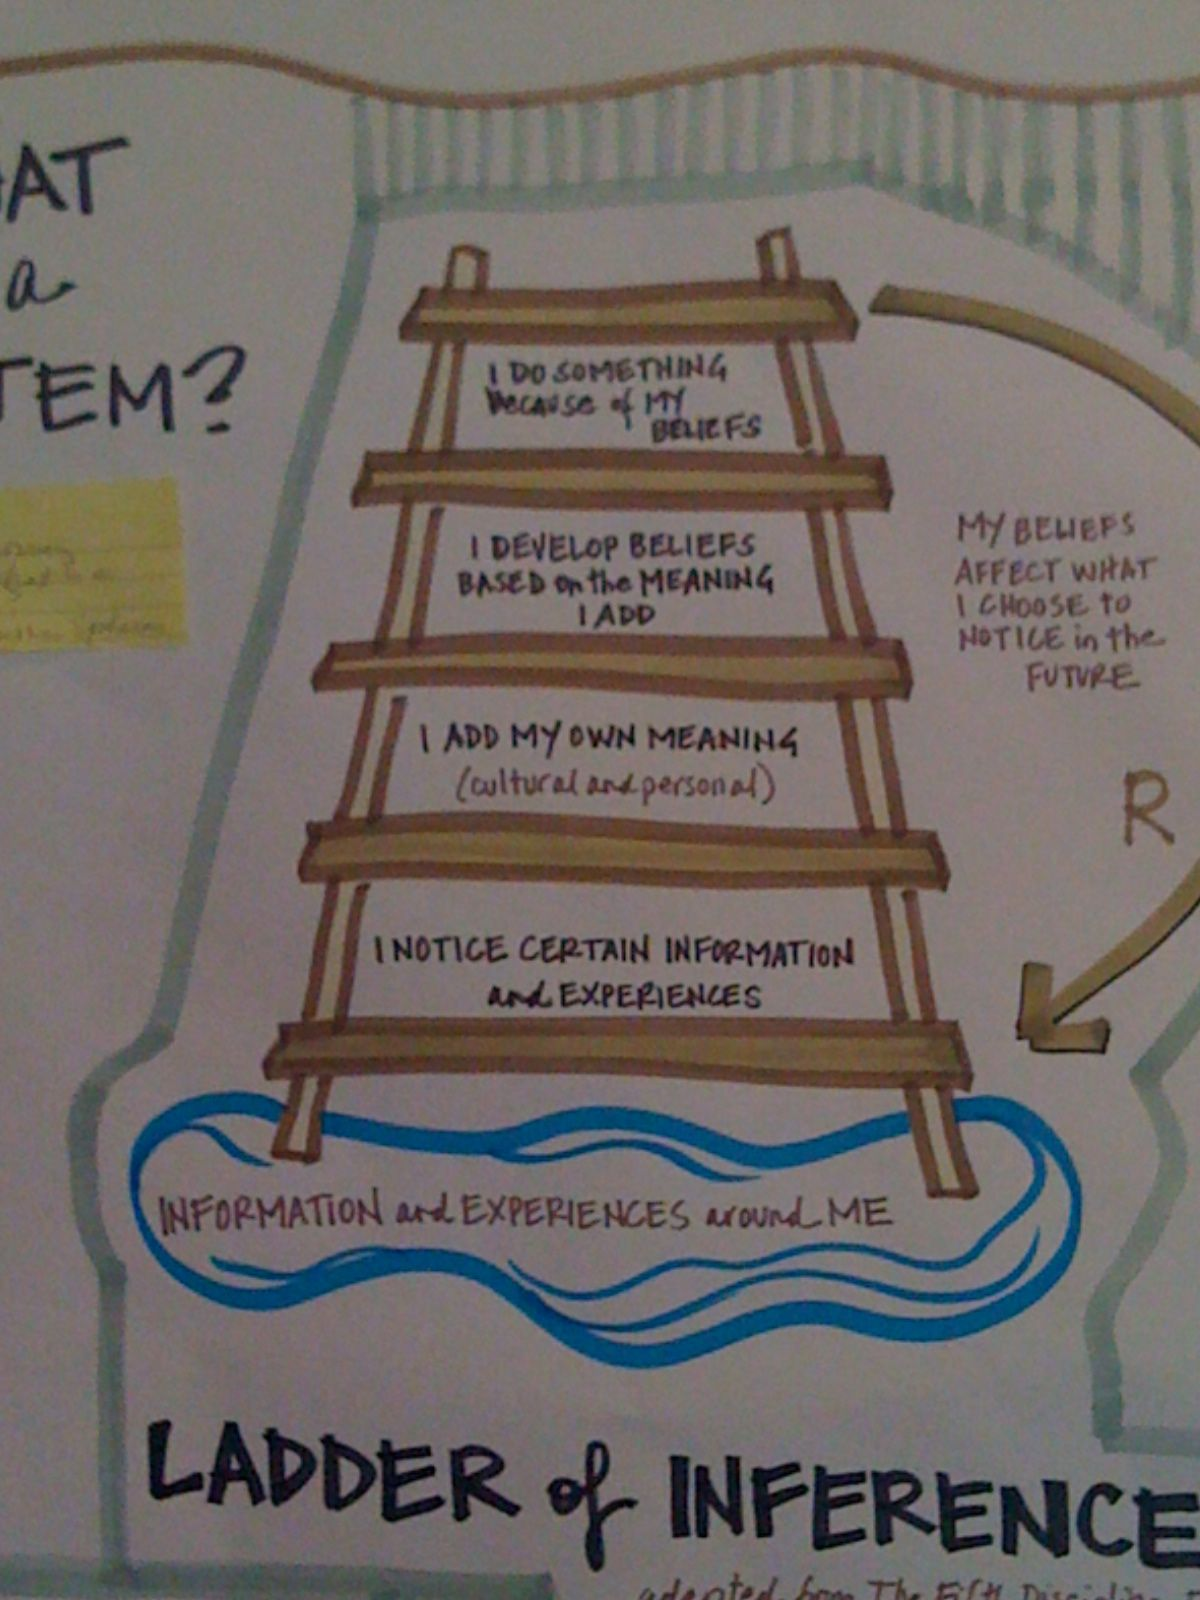 Ladder Of Inference From Camp Snowball July 2011 Repin By Pinterest For Ipad Inferencing Inference Systems Thinking